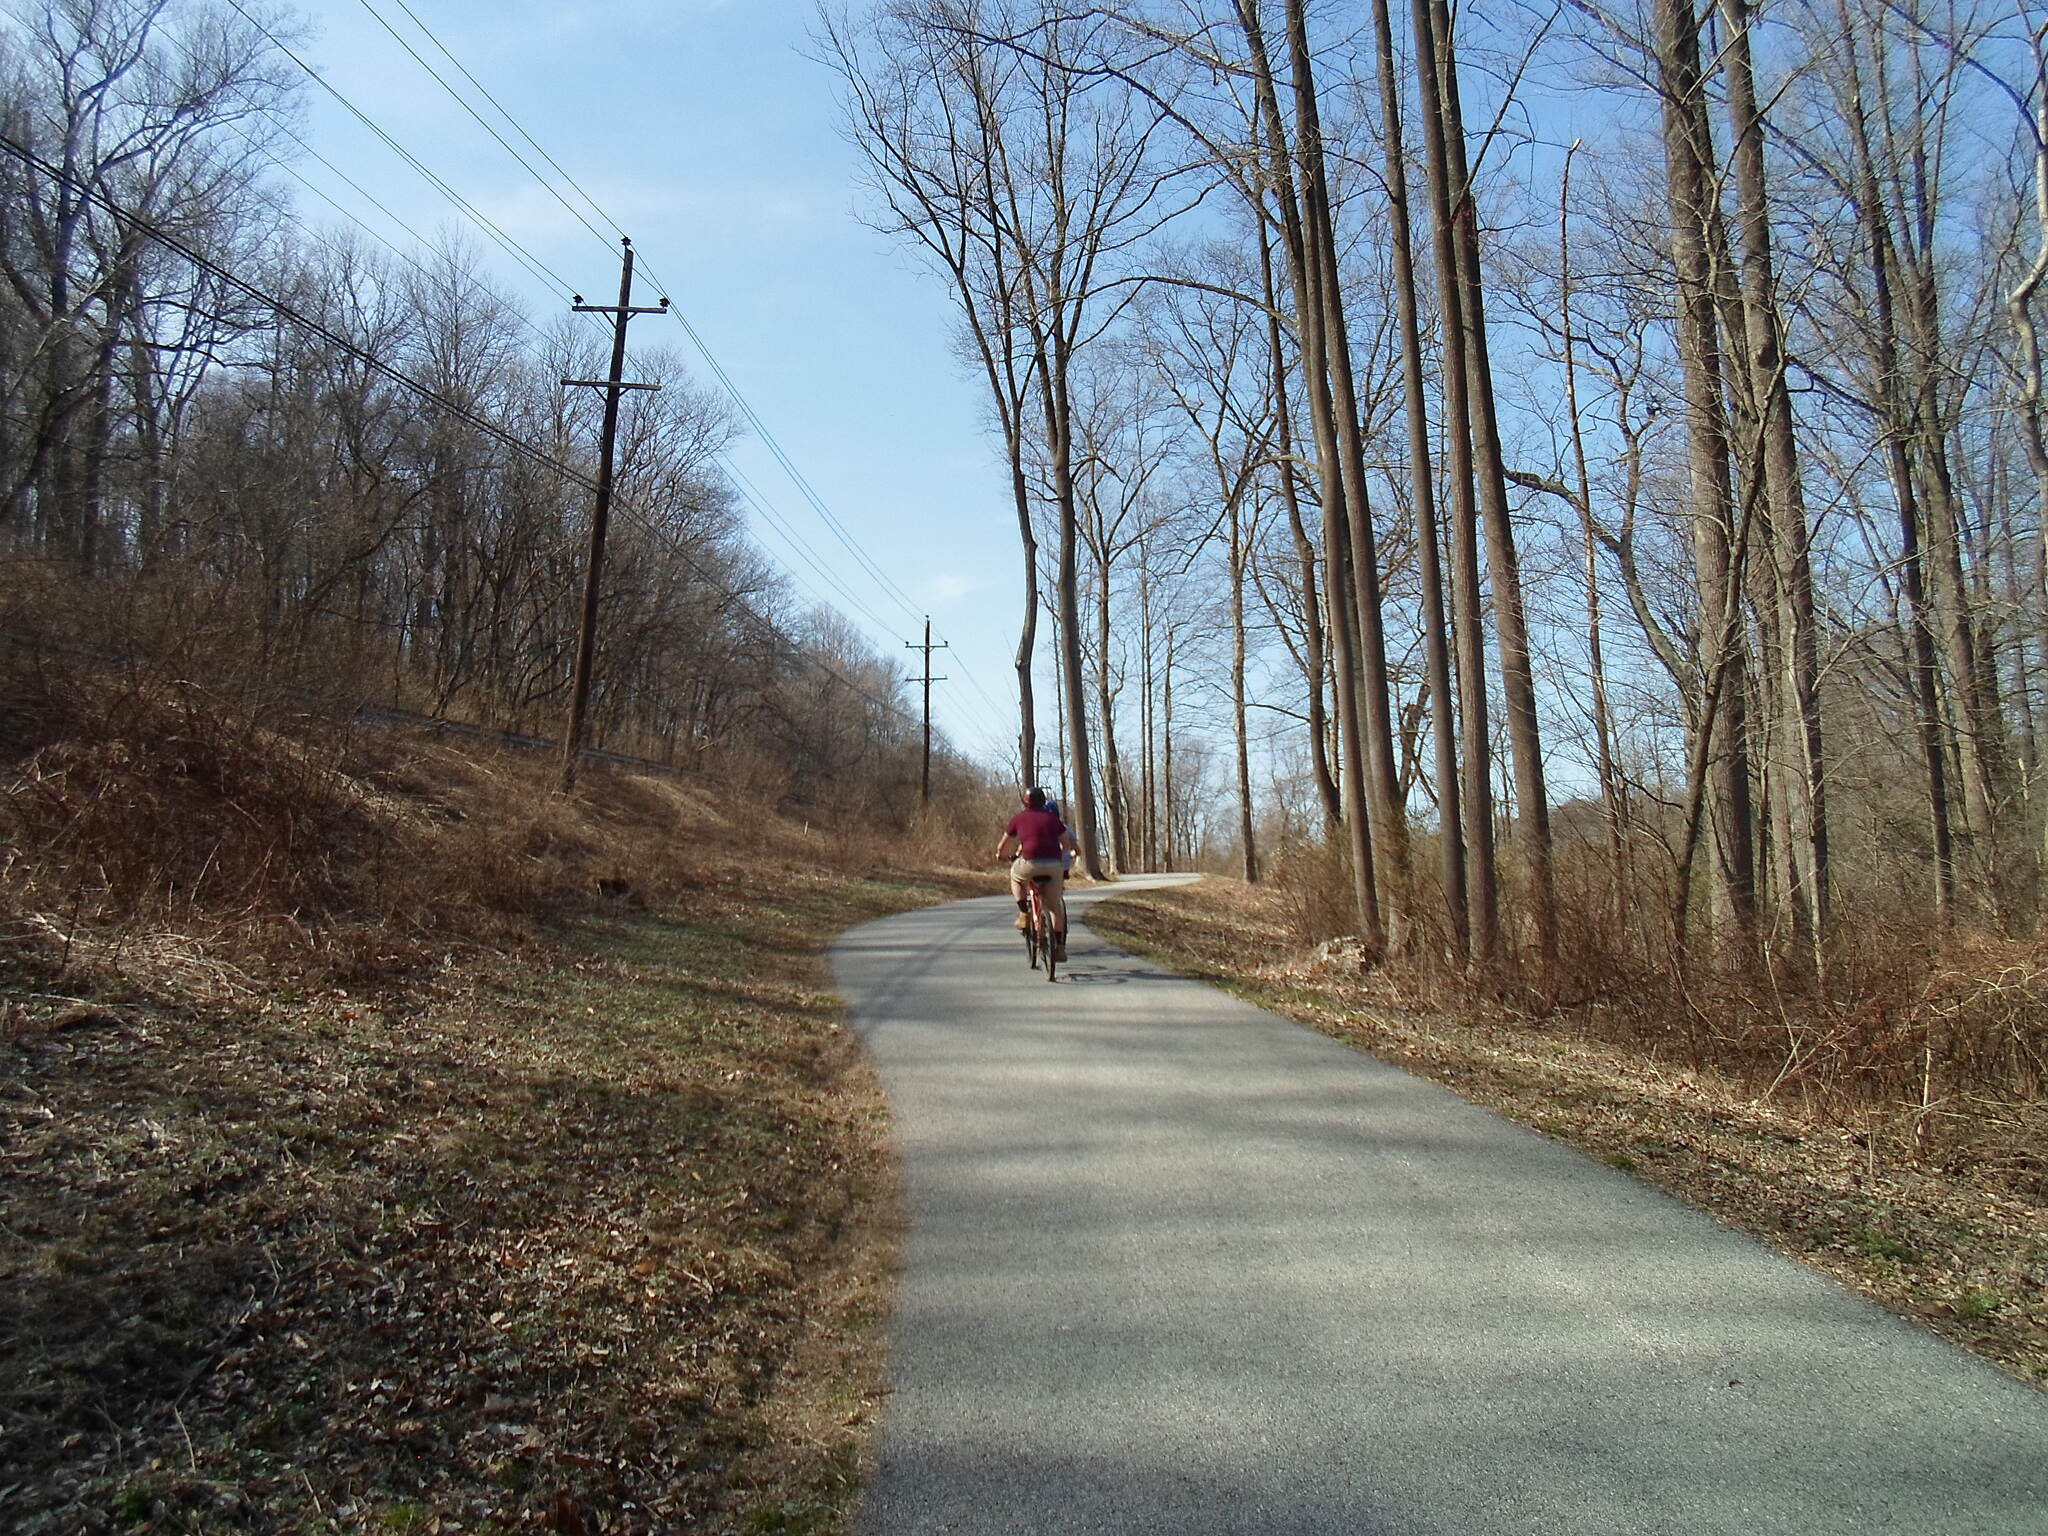 East Branch Brandywine Trail East Branch Brandywine Trail Cyclist heading north through the woods; Route 322 can be seen to the left. Taken April 2015.